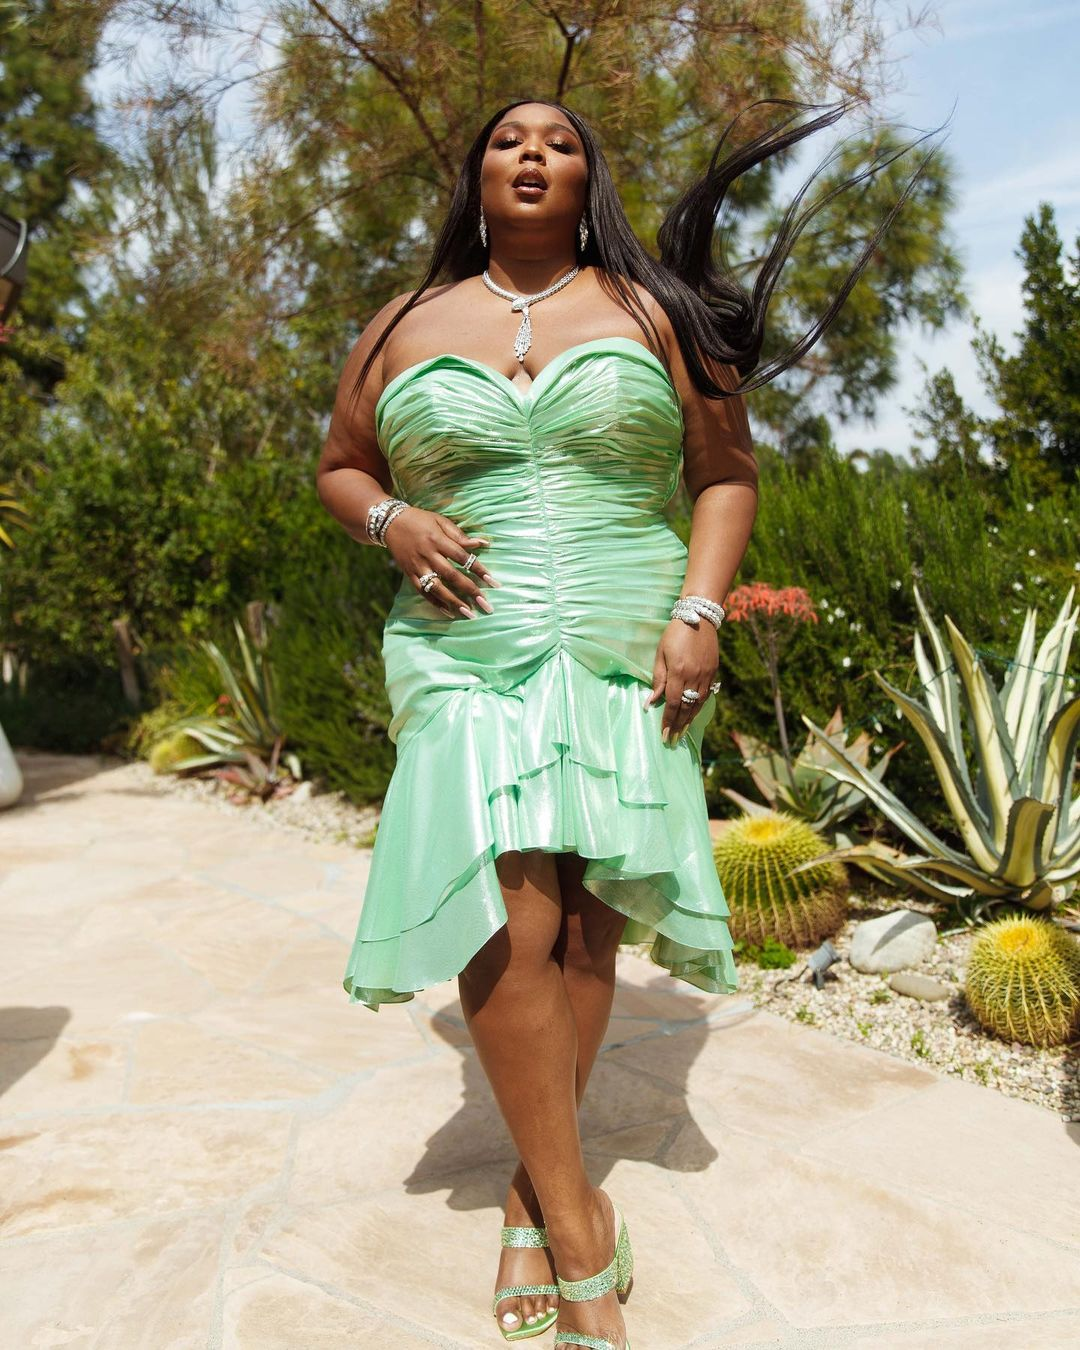 Singer Lizzo in a strapless green gown with ruching all throughout and a hi-low hemline. She is walking toward the camera. There is greenery in the background.